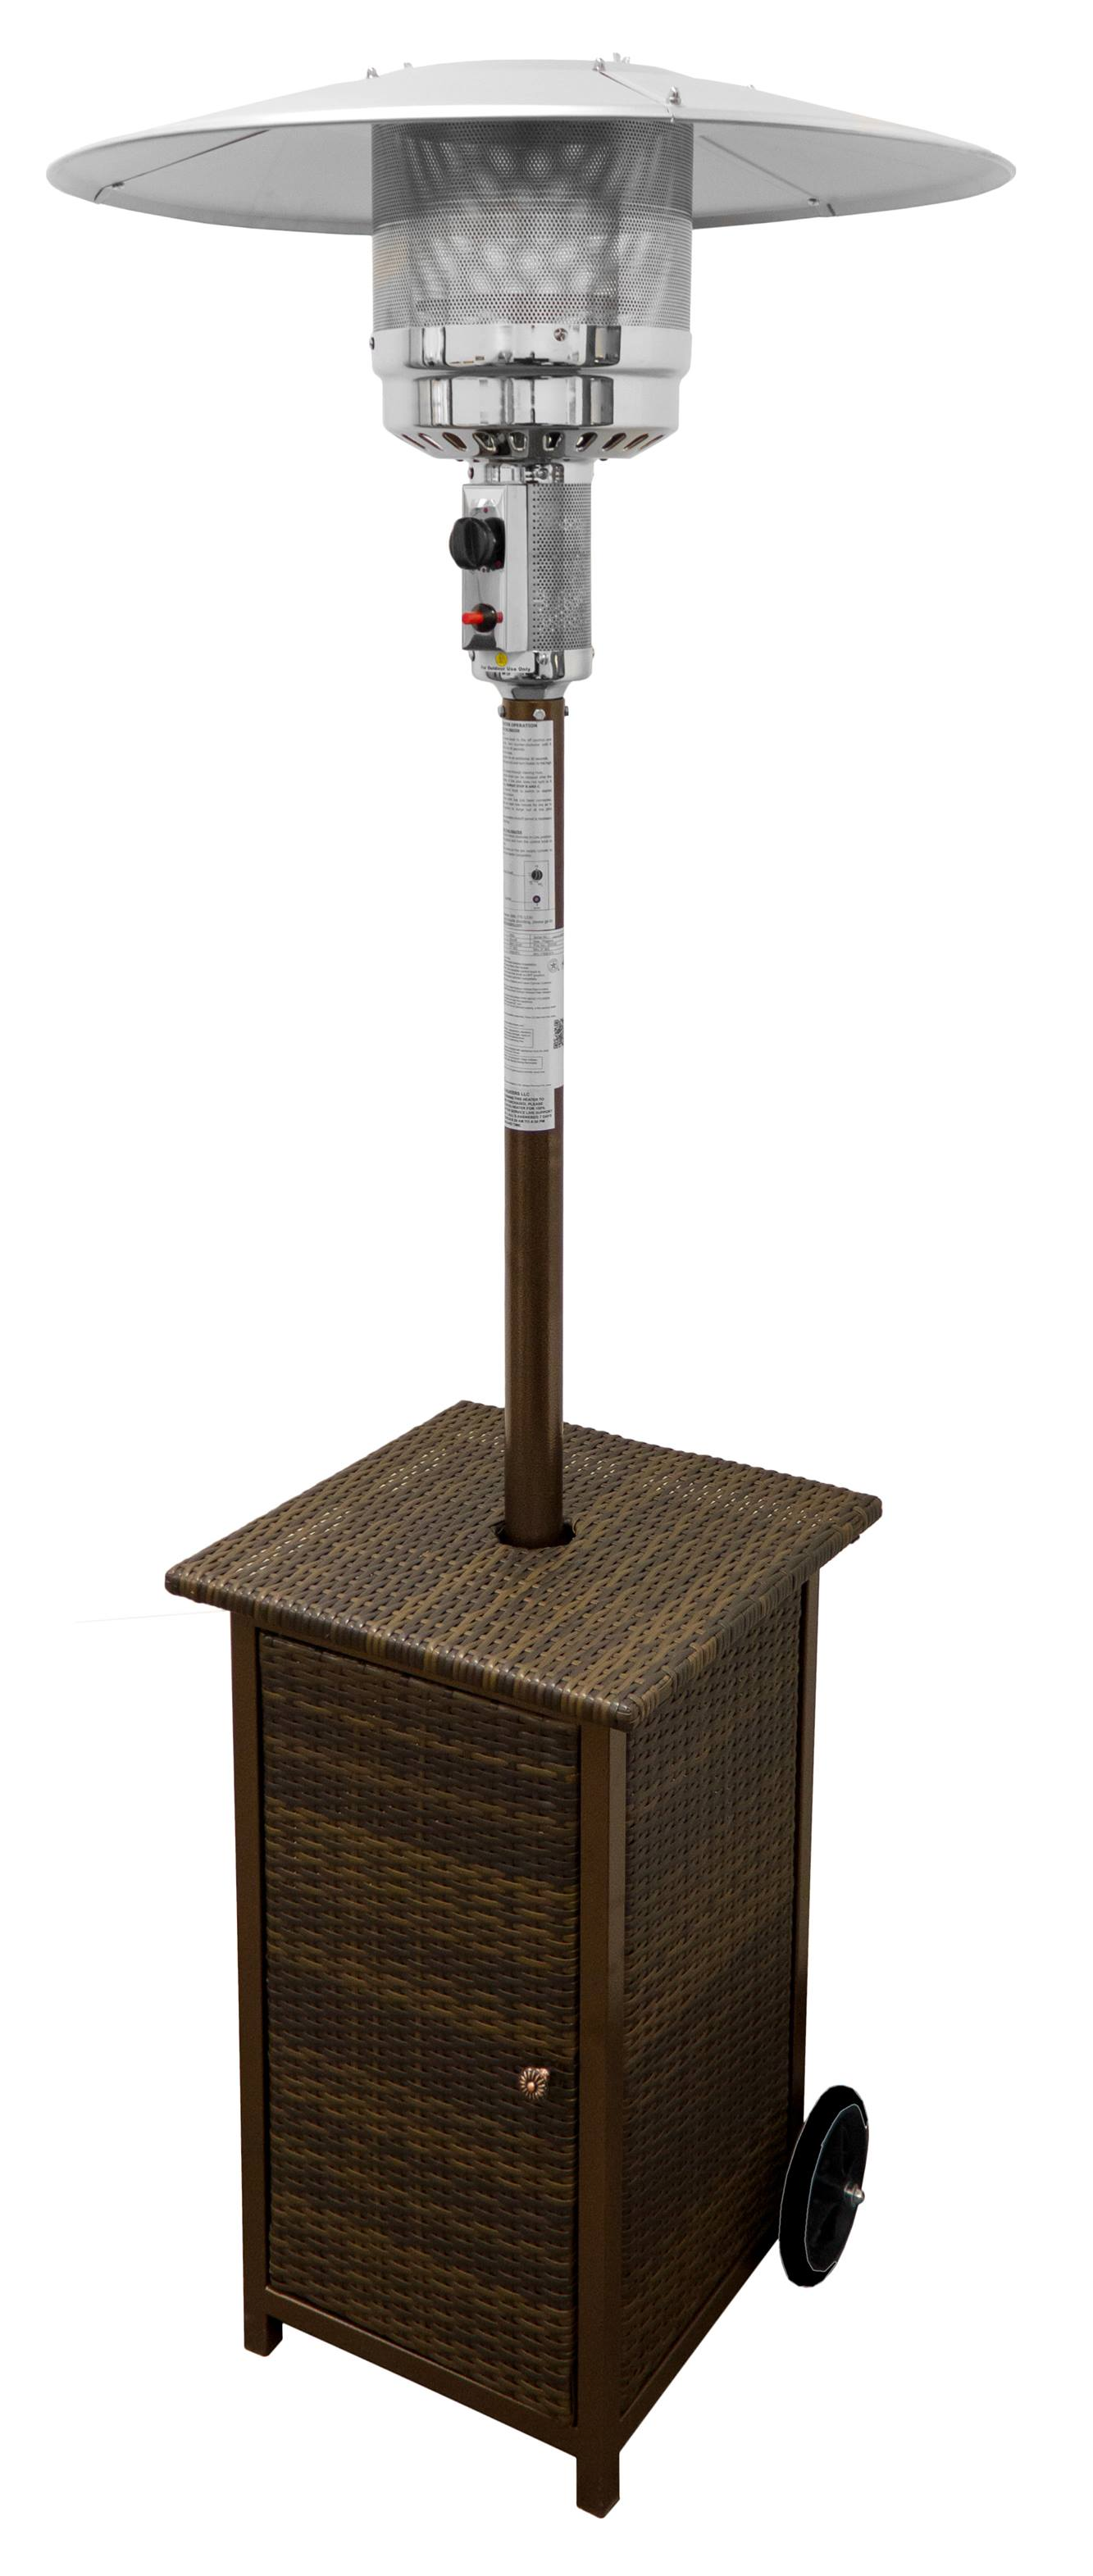 87 Tall Square Wicker Patio Heater With Table 1